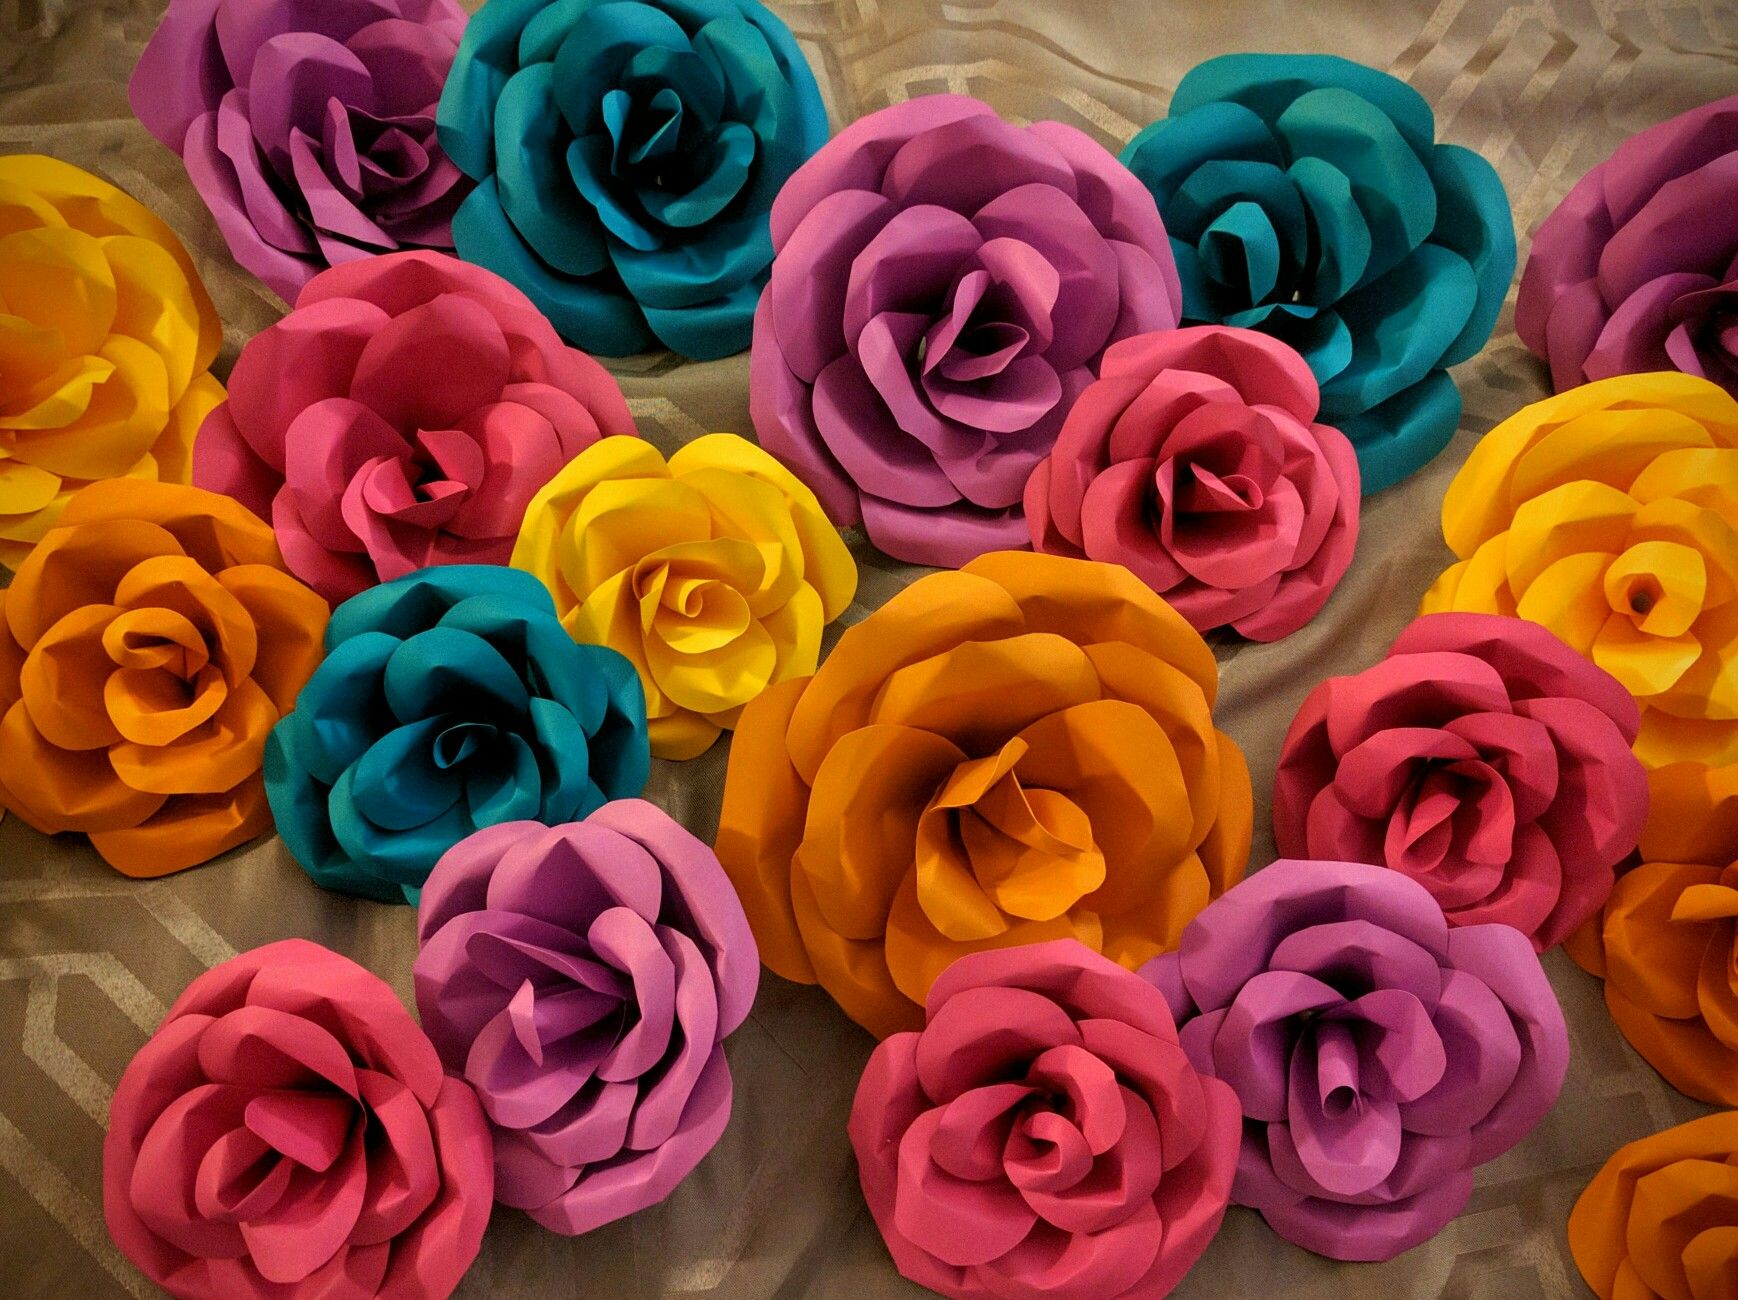 Paper Flowers Jungle themed bridal party Contact me for more